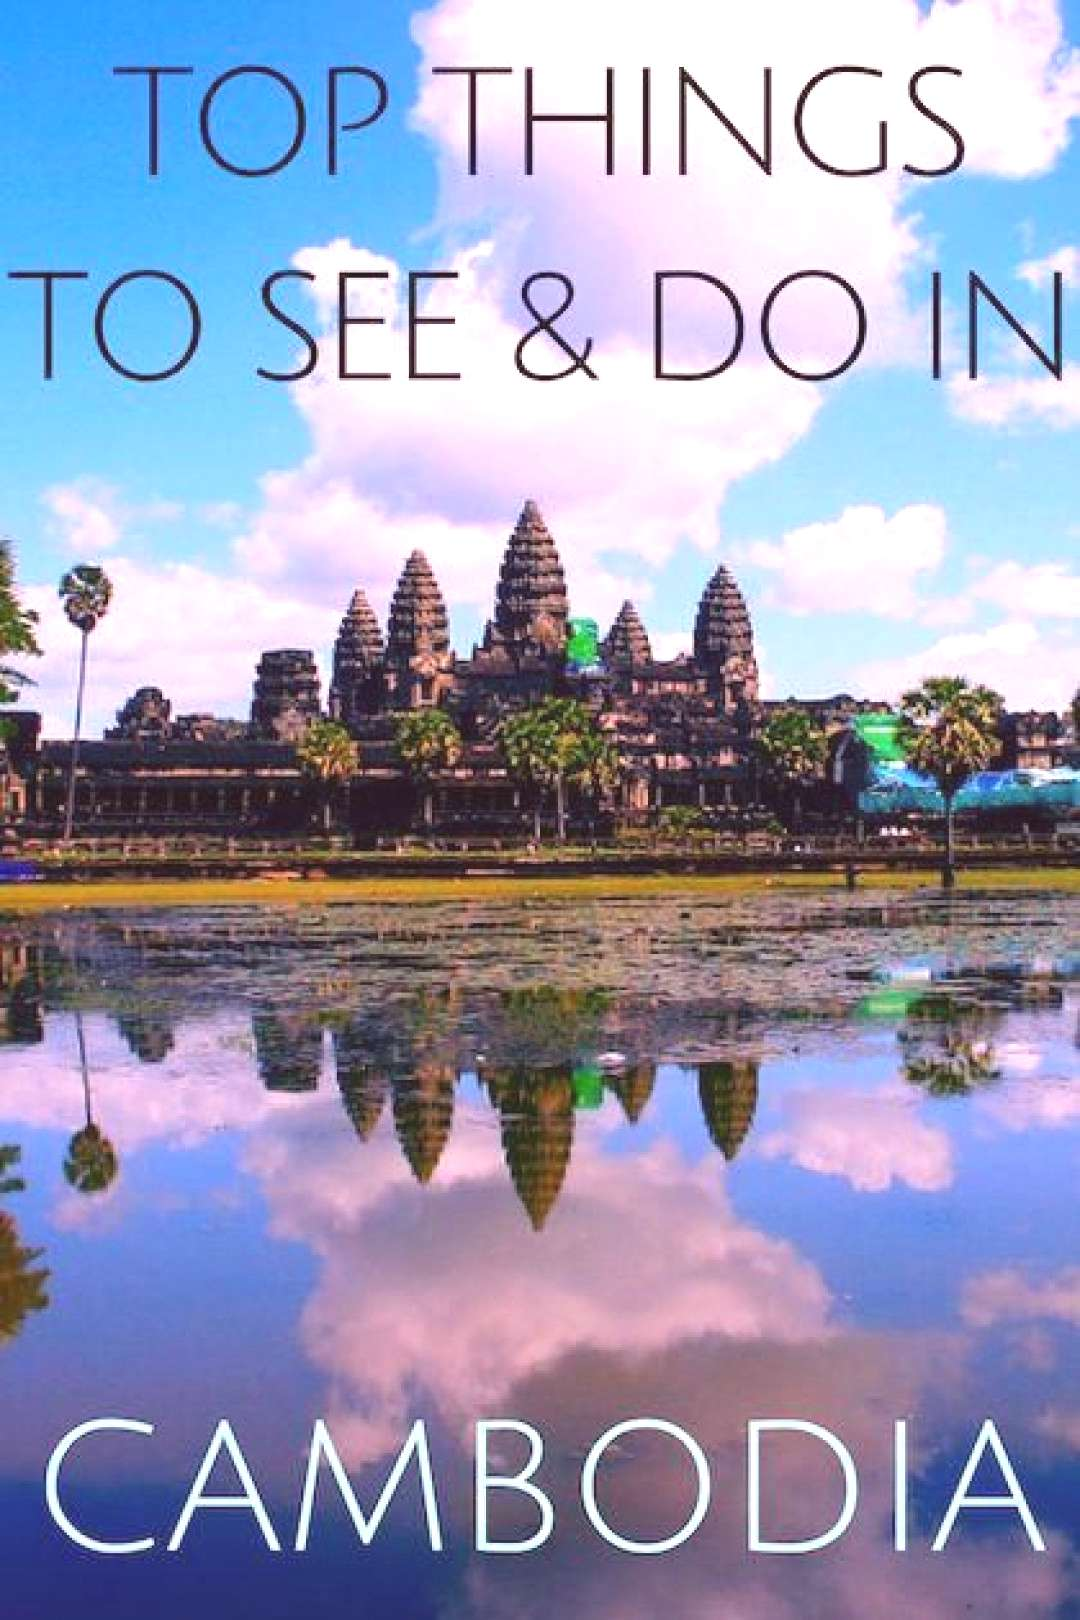 Top things to see and do in Cambodia | Cambodia Travel Guide | What to do in Cambodia There are so